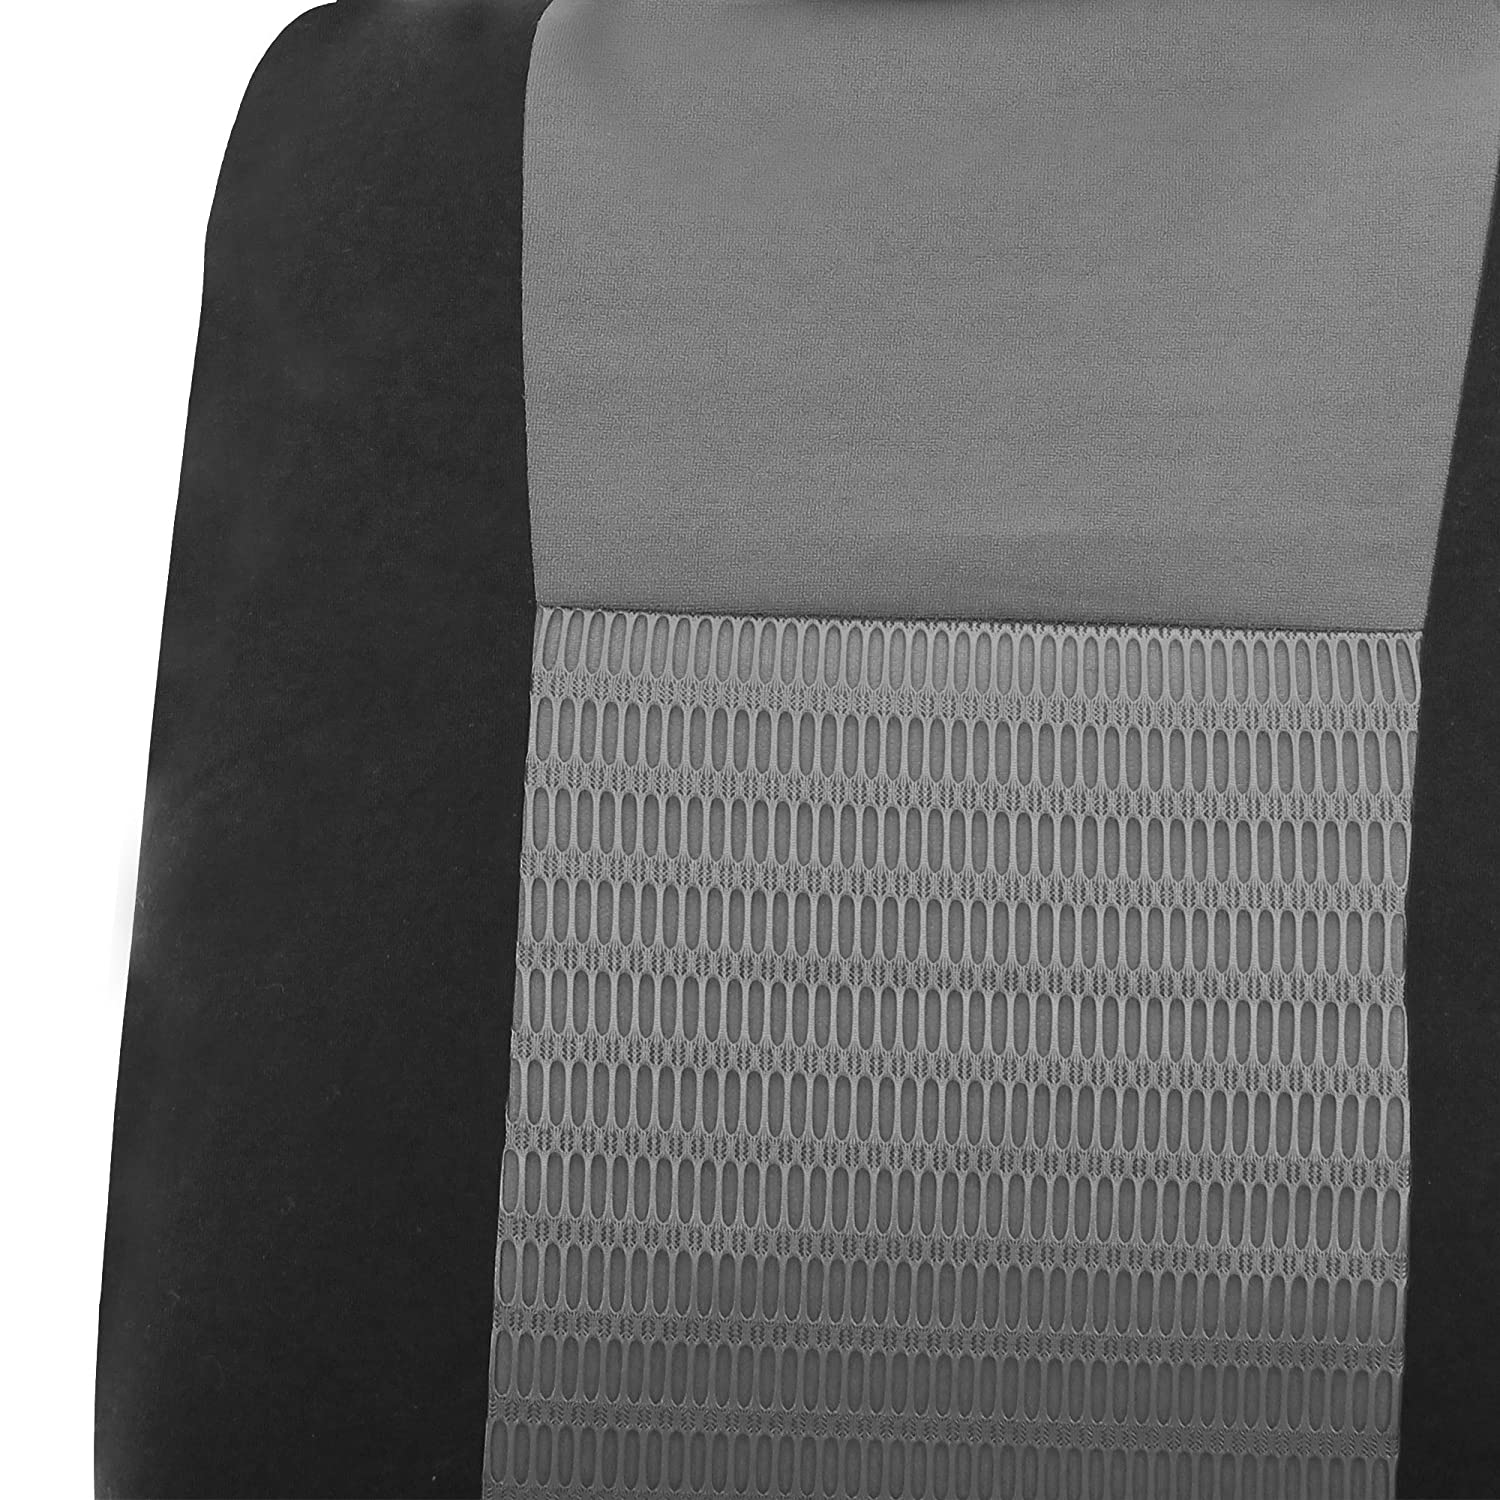 Airbag compatible and Split Bench FH-FB060114 Trendy Elegance Car Seat Covers Blue Black color FH GROUP